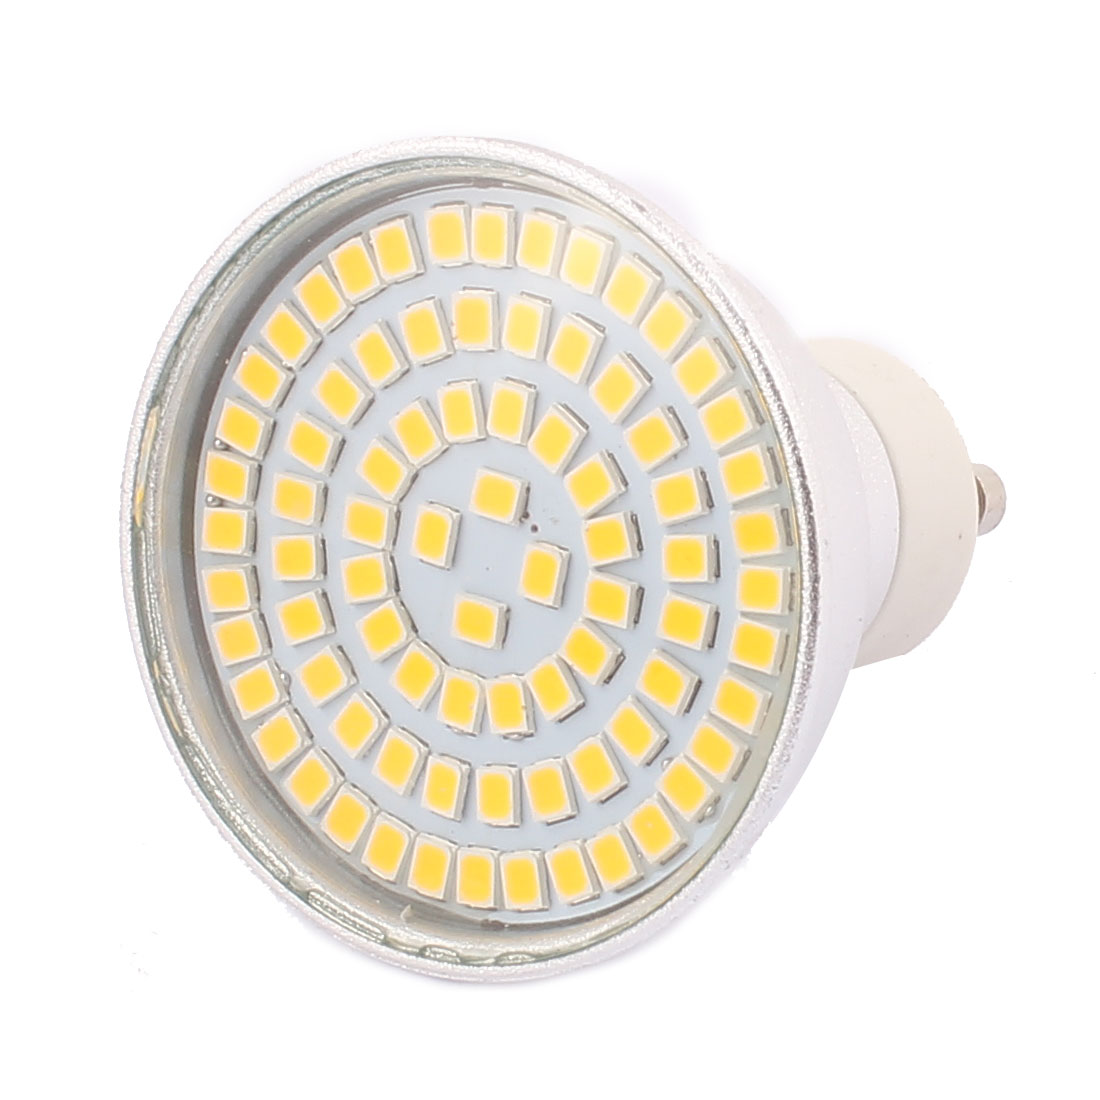 GU10 AC 110V 8W SMD 2835 80 LEDs Aluminum Energy Saving LED Lamp Bulb Warm White